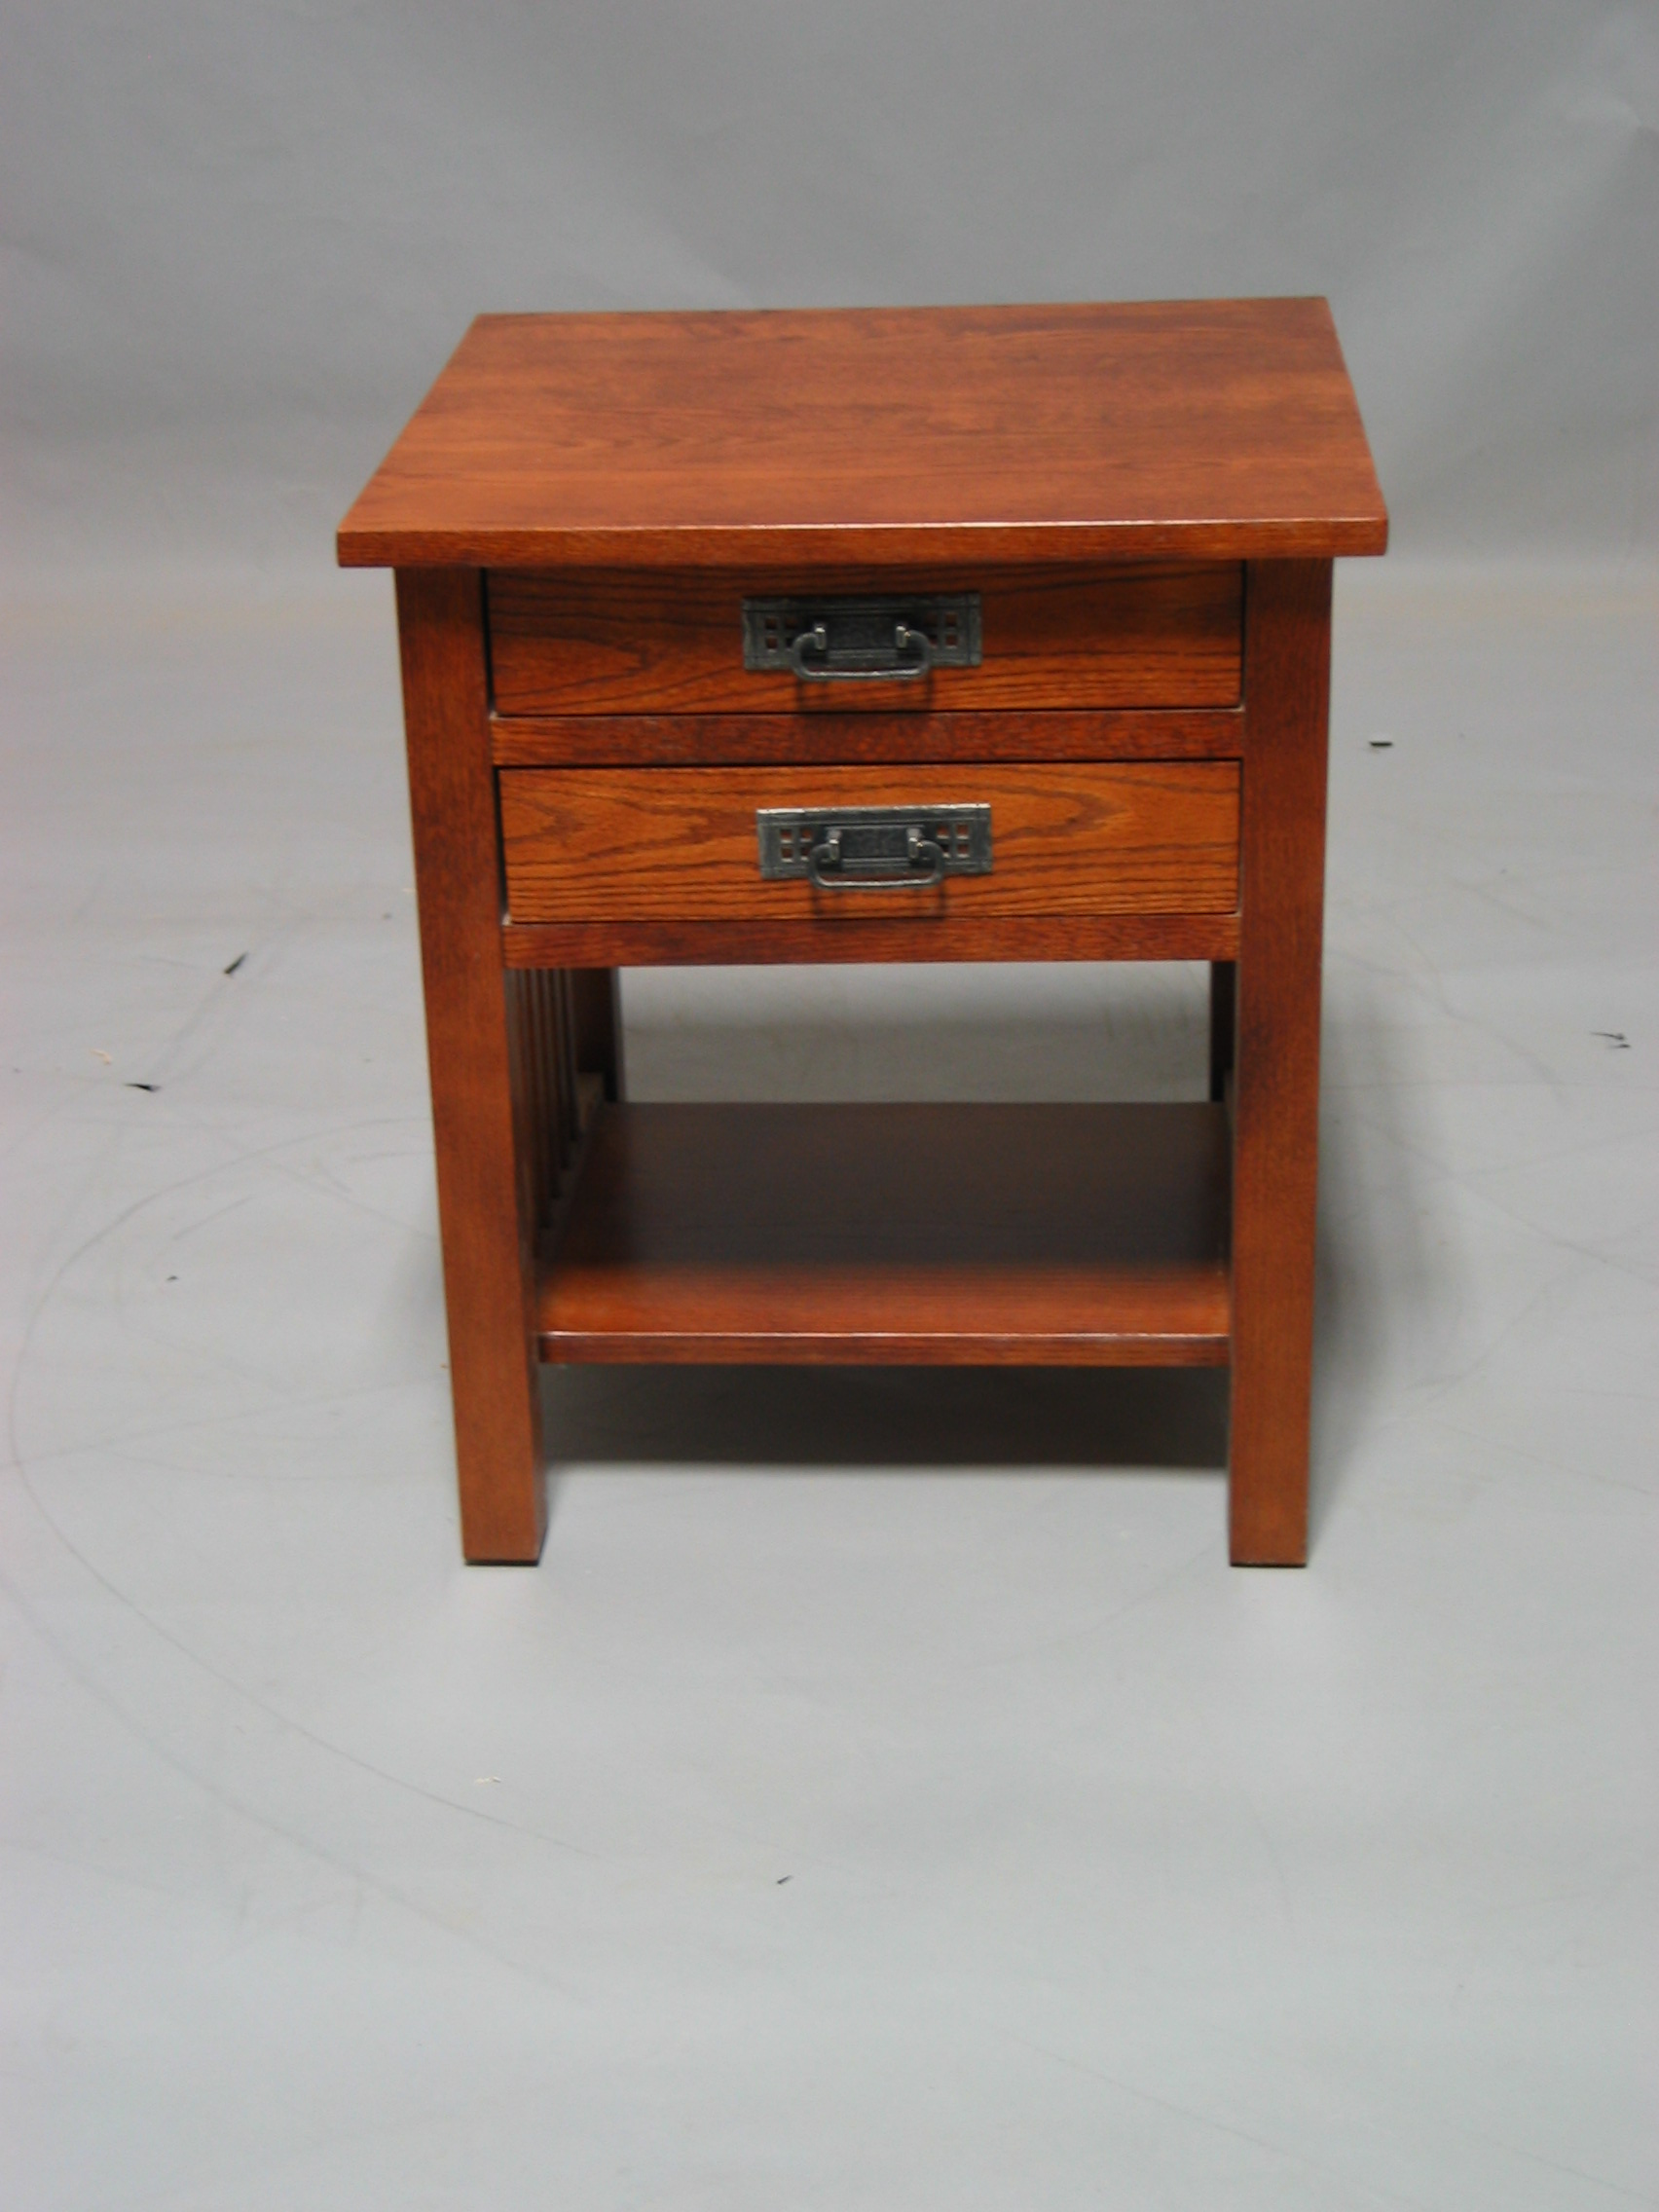 Early American Bedroom Furniture End Table W 2 Drawers